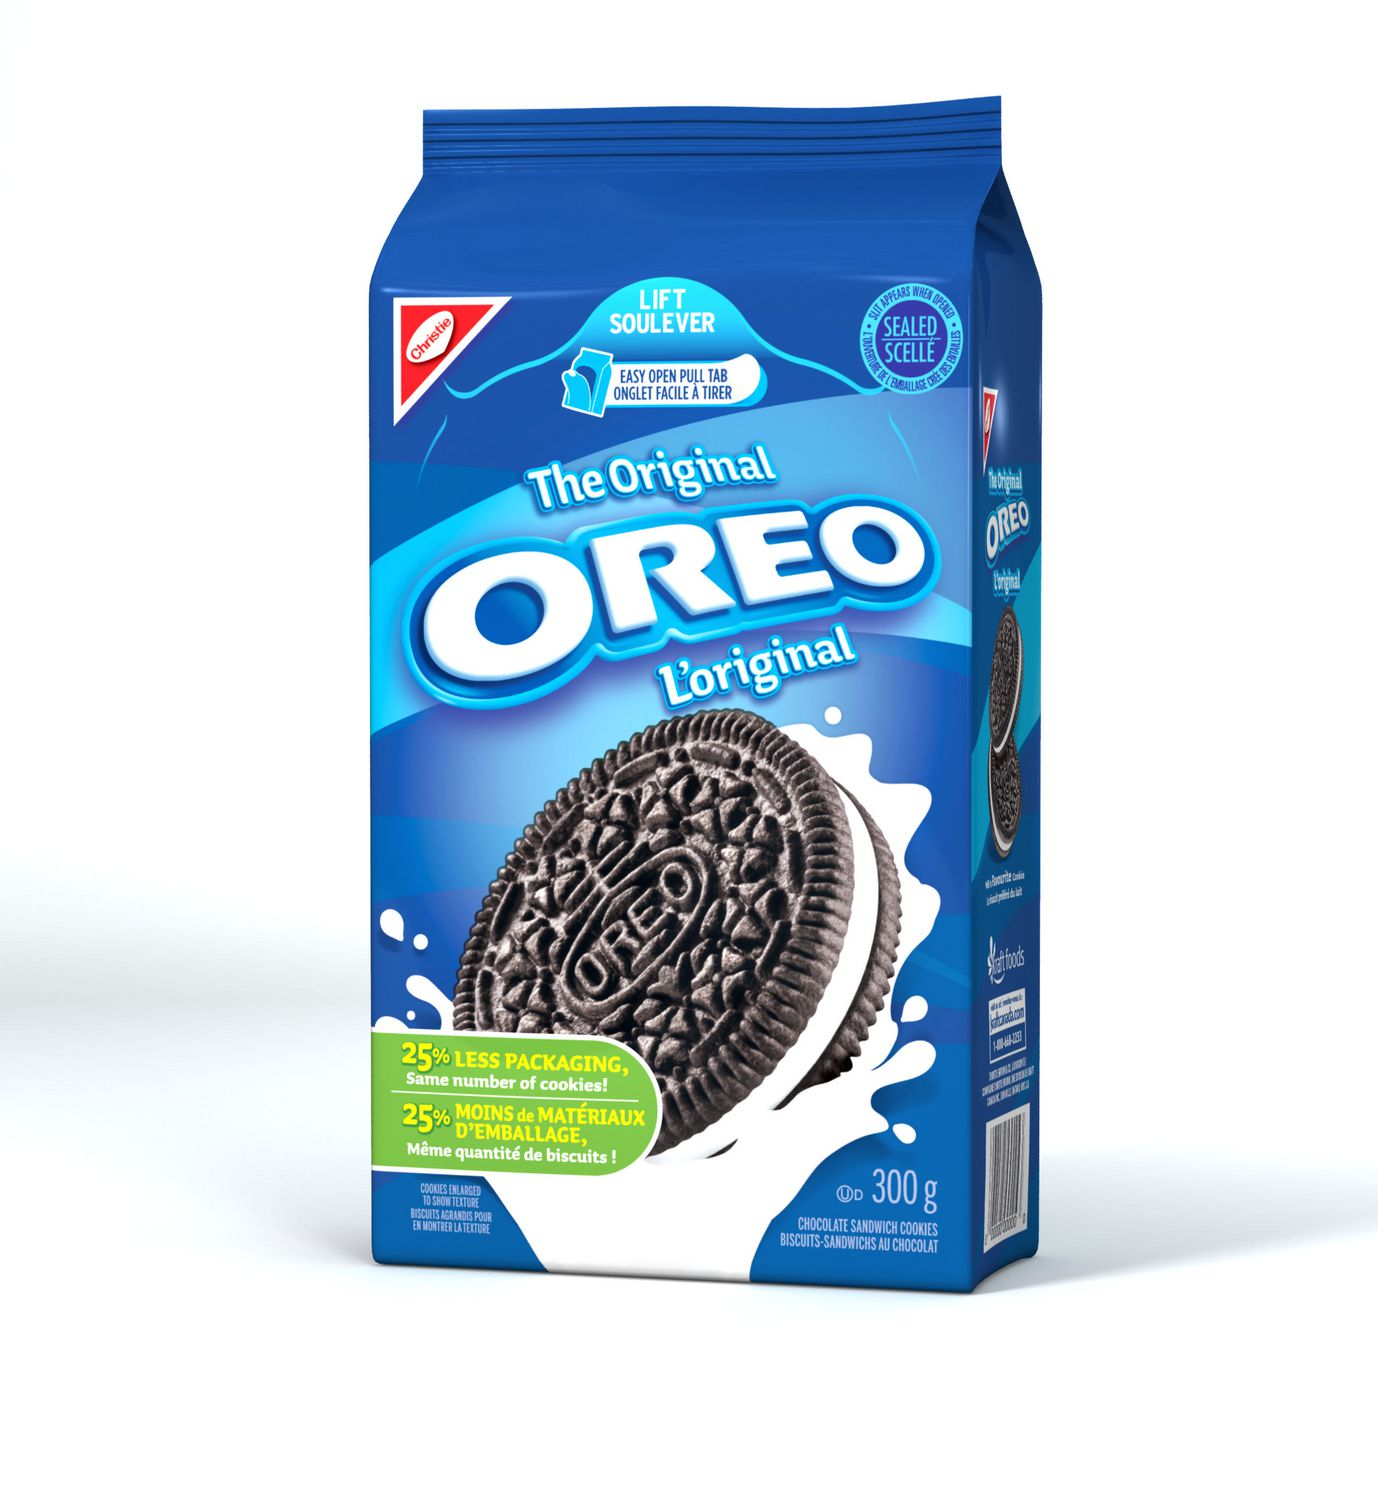 Oreo Original Chocolate Sandwich Cookies